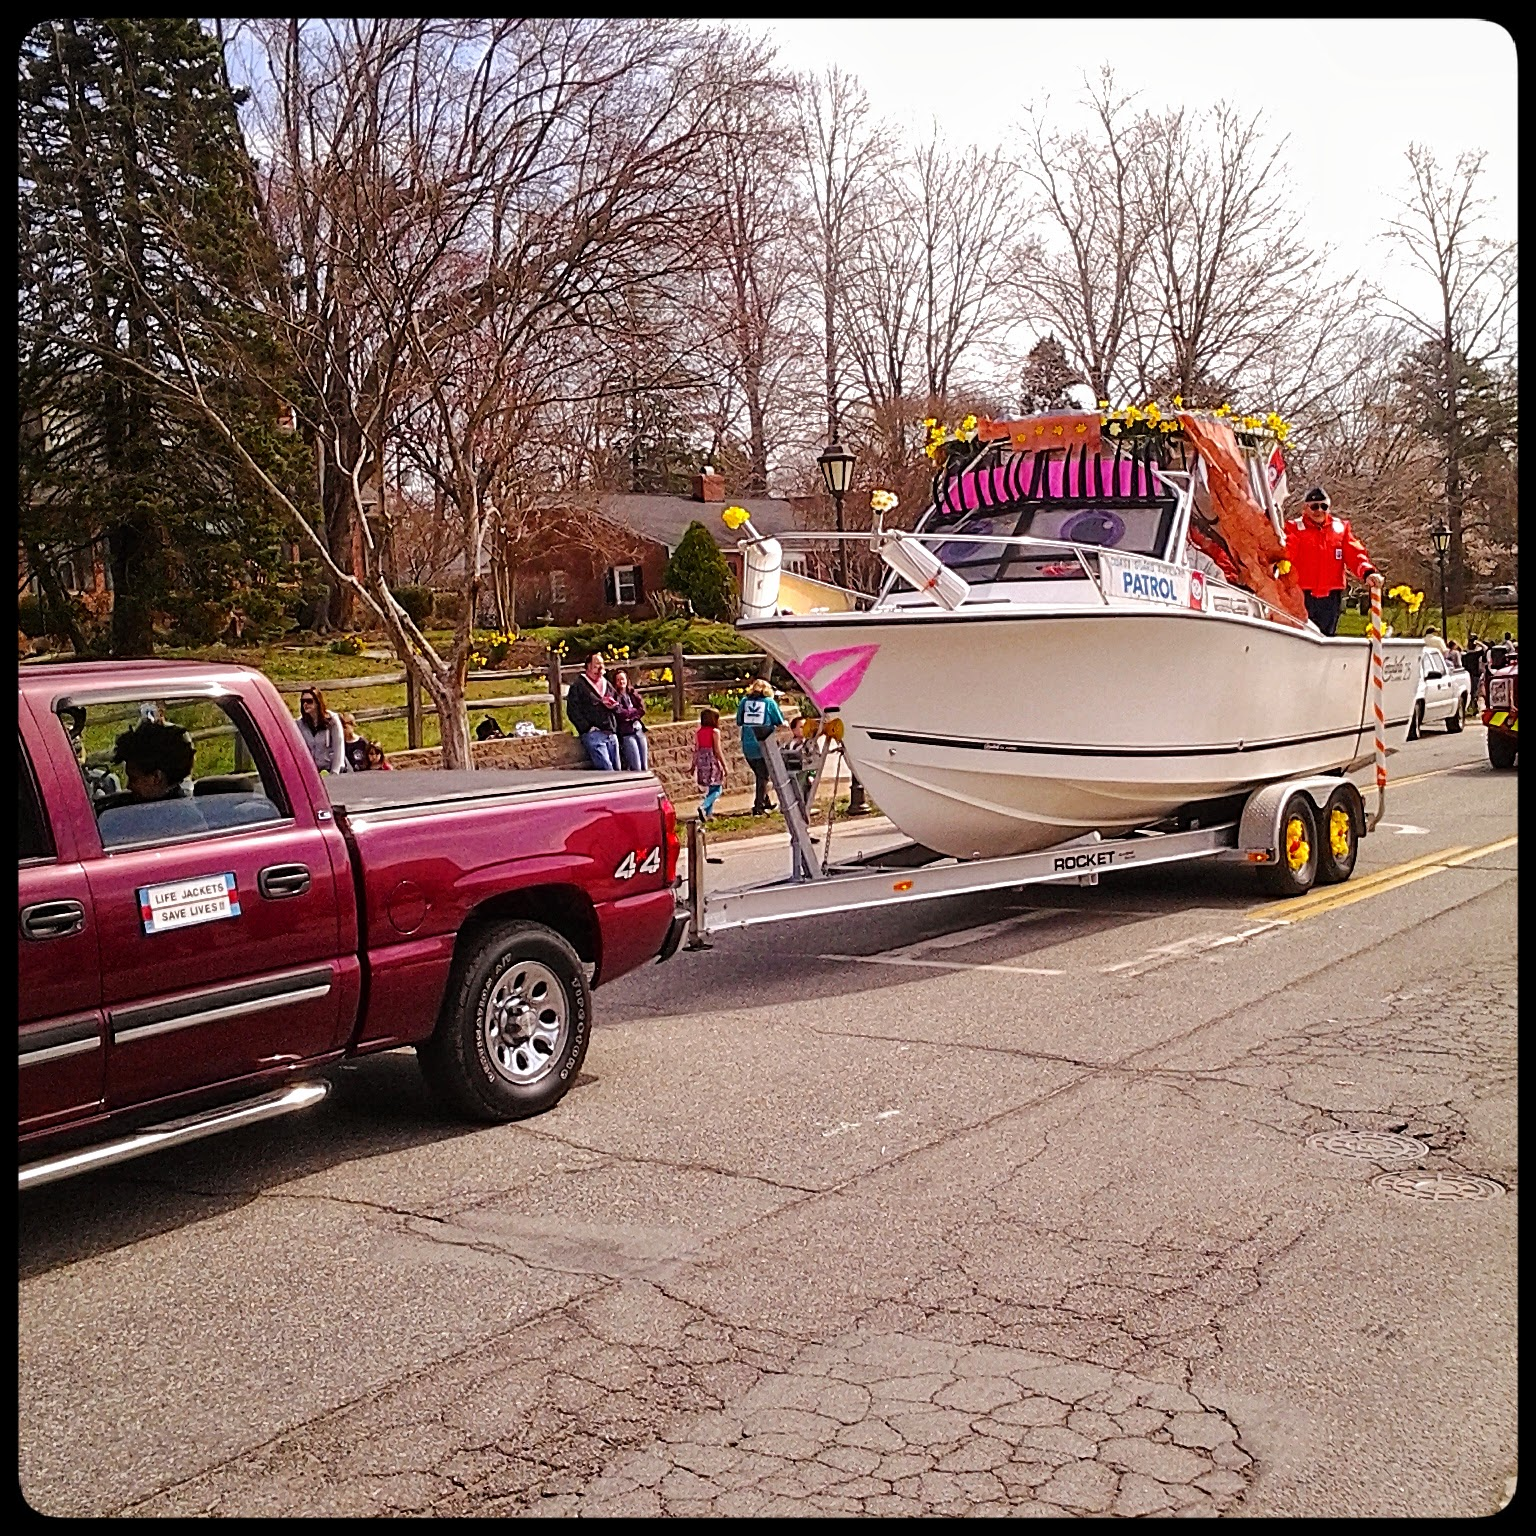 Parade at 28th Annual Gloucester Daffodil Festival via foobella.blogspot.com